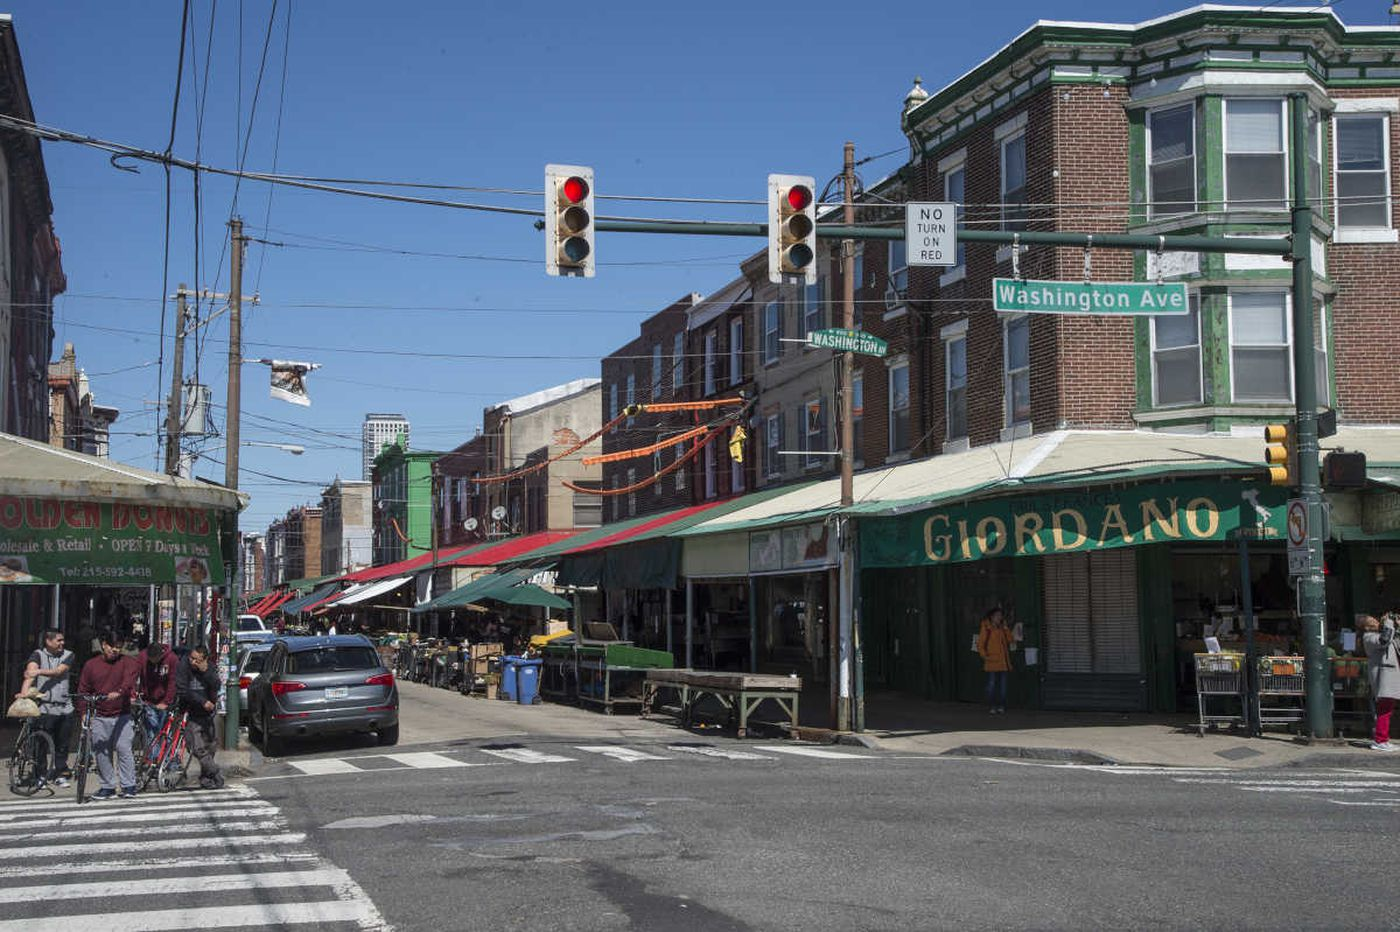 Washington Ave. could be a great city street, with new survey pointing the way | Editorial